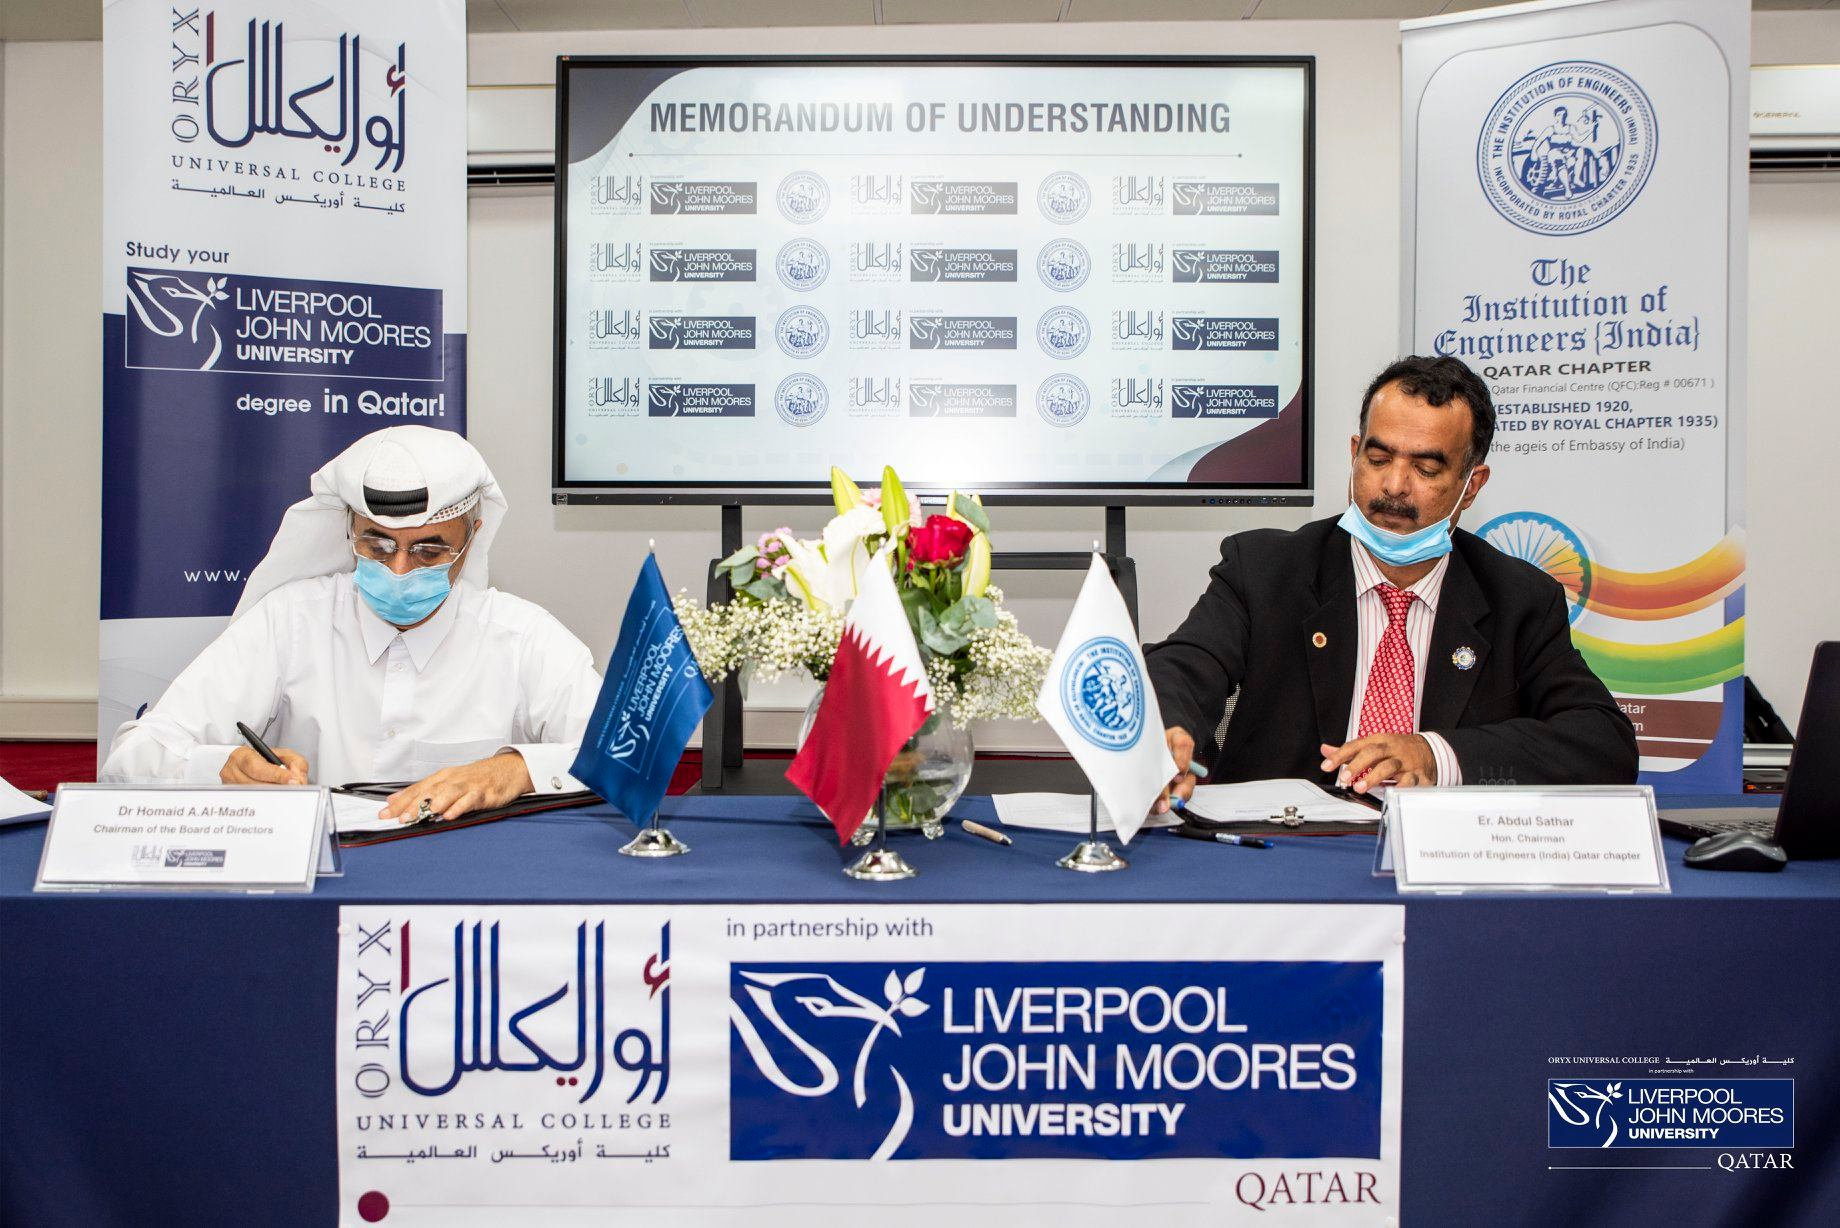 MOU signed between Oryx Universal College, in partnership with Liverpool John Moores University, and The Institution of Engineers - India (IEI) (Qatar Chapter)